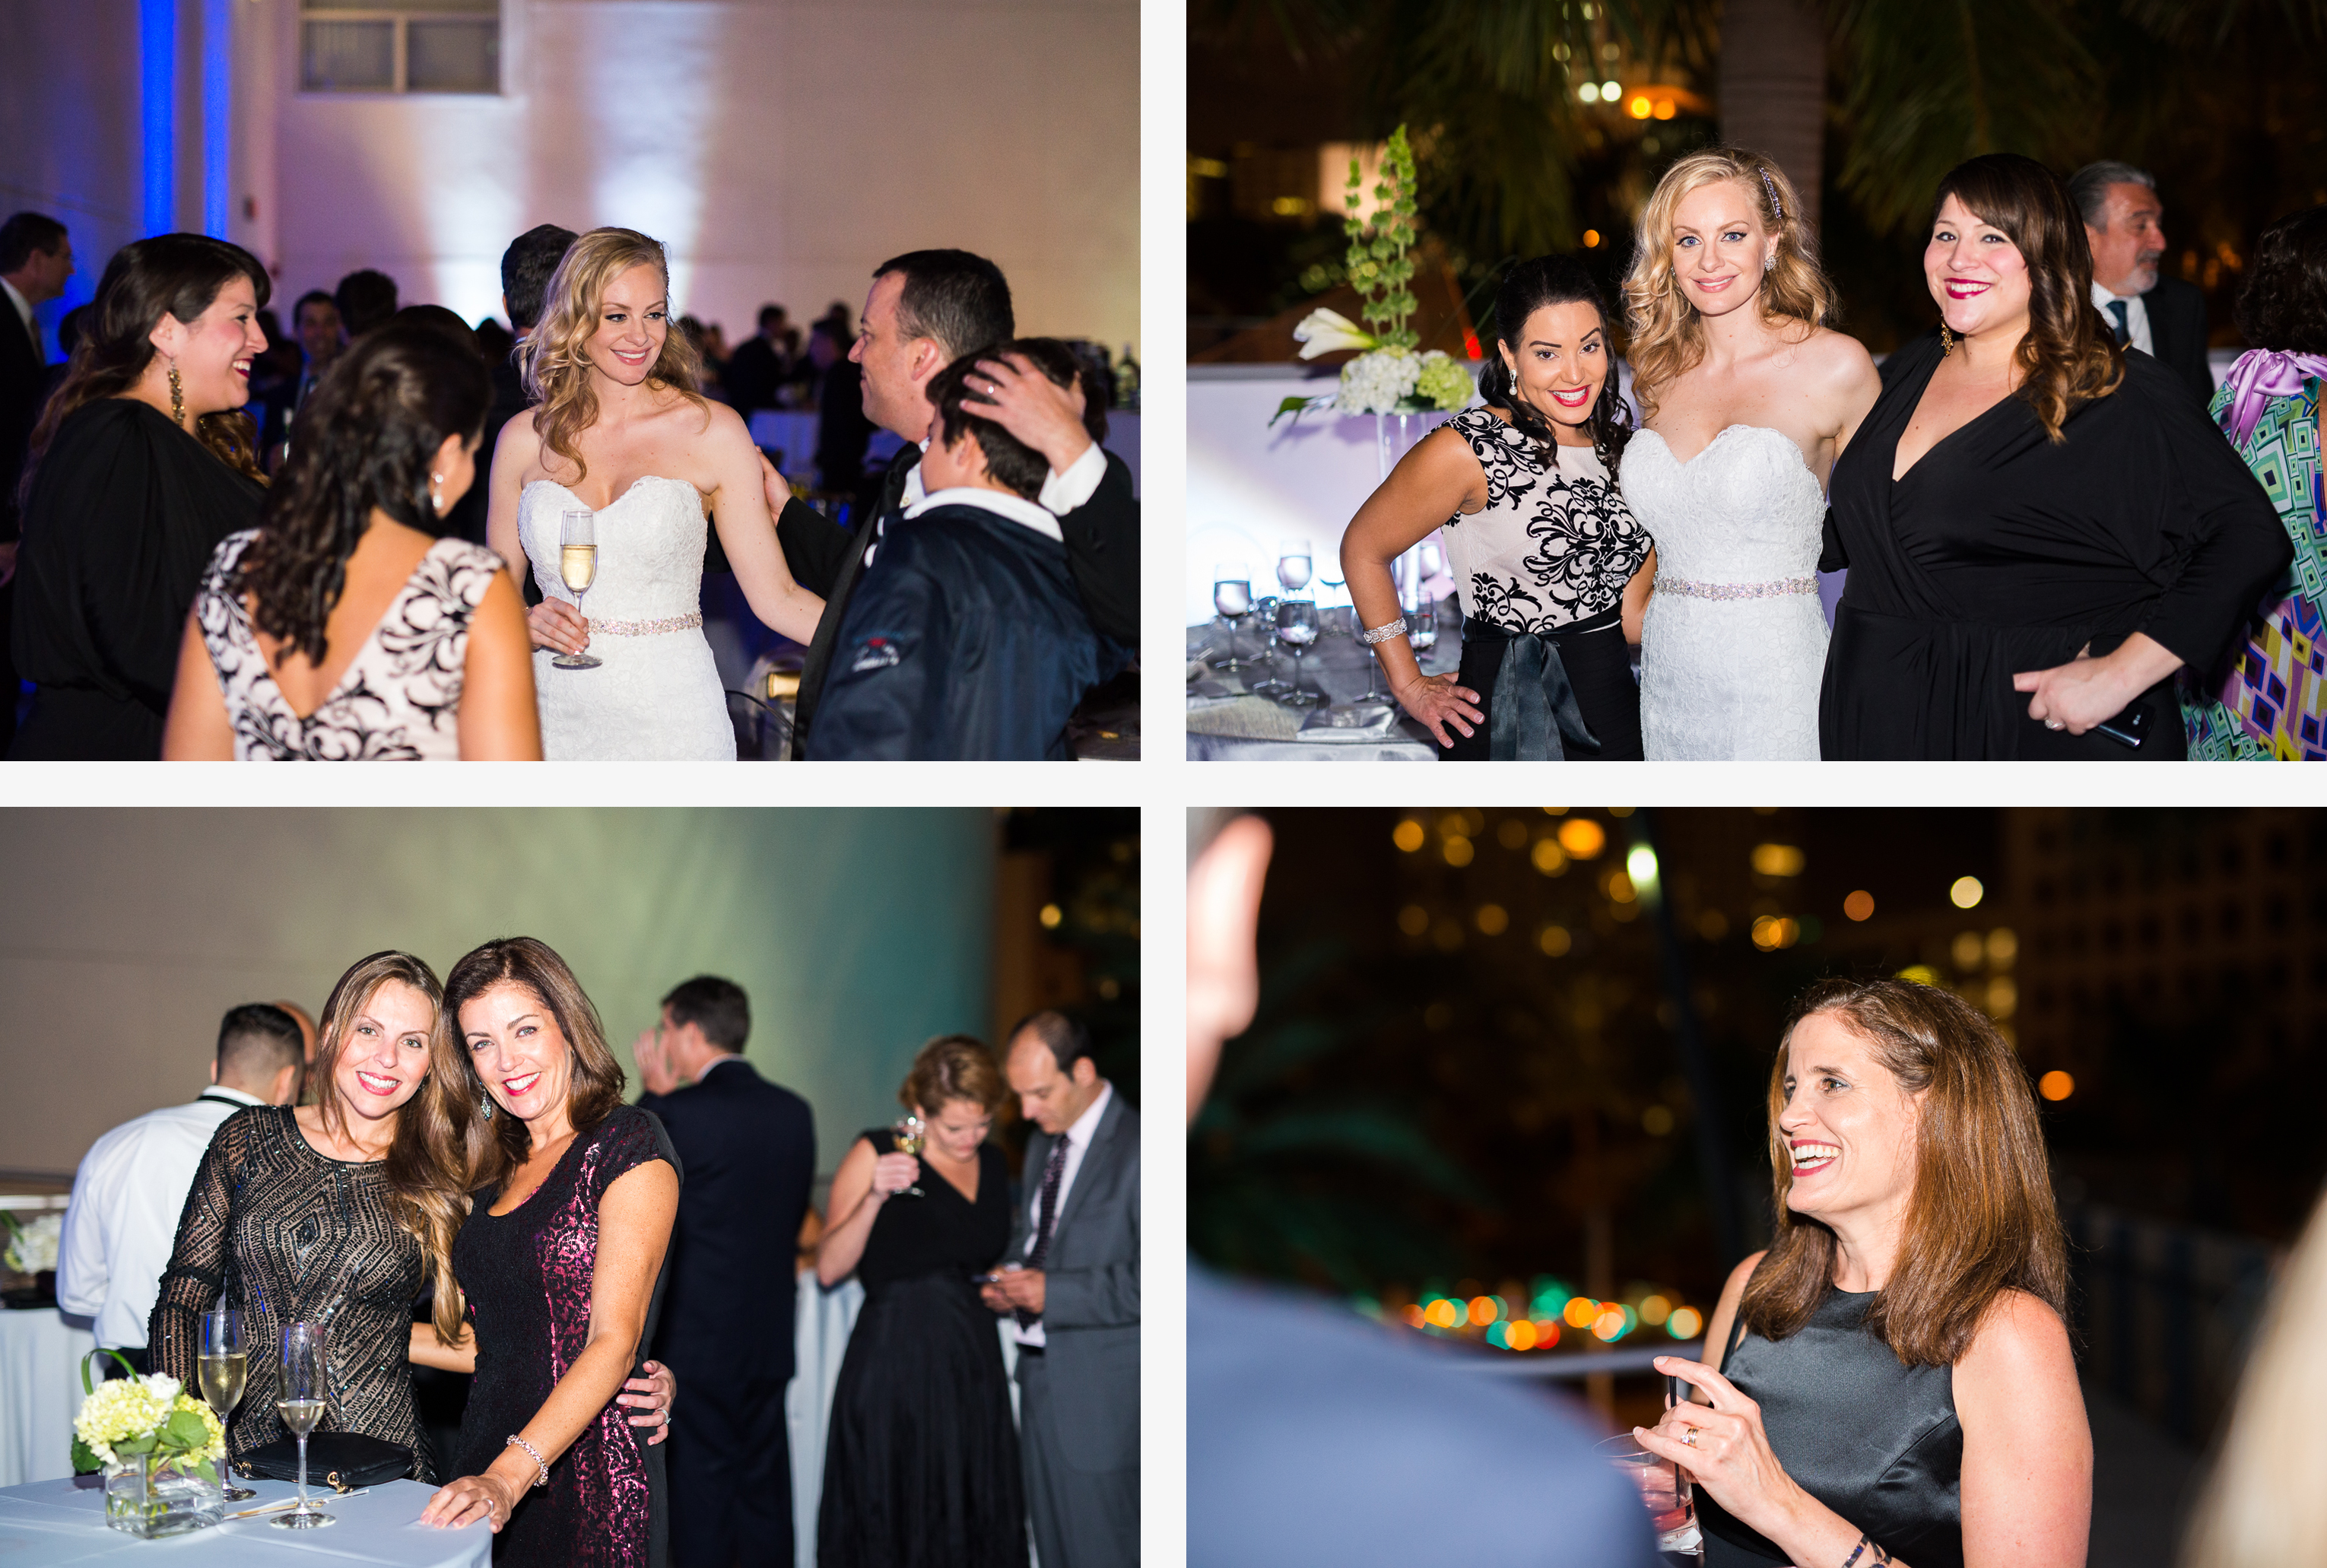 brandwold.se-miami-wedding-fortlauderdale-139